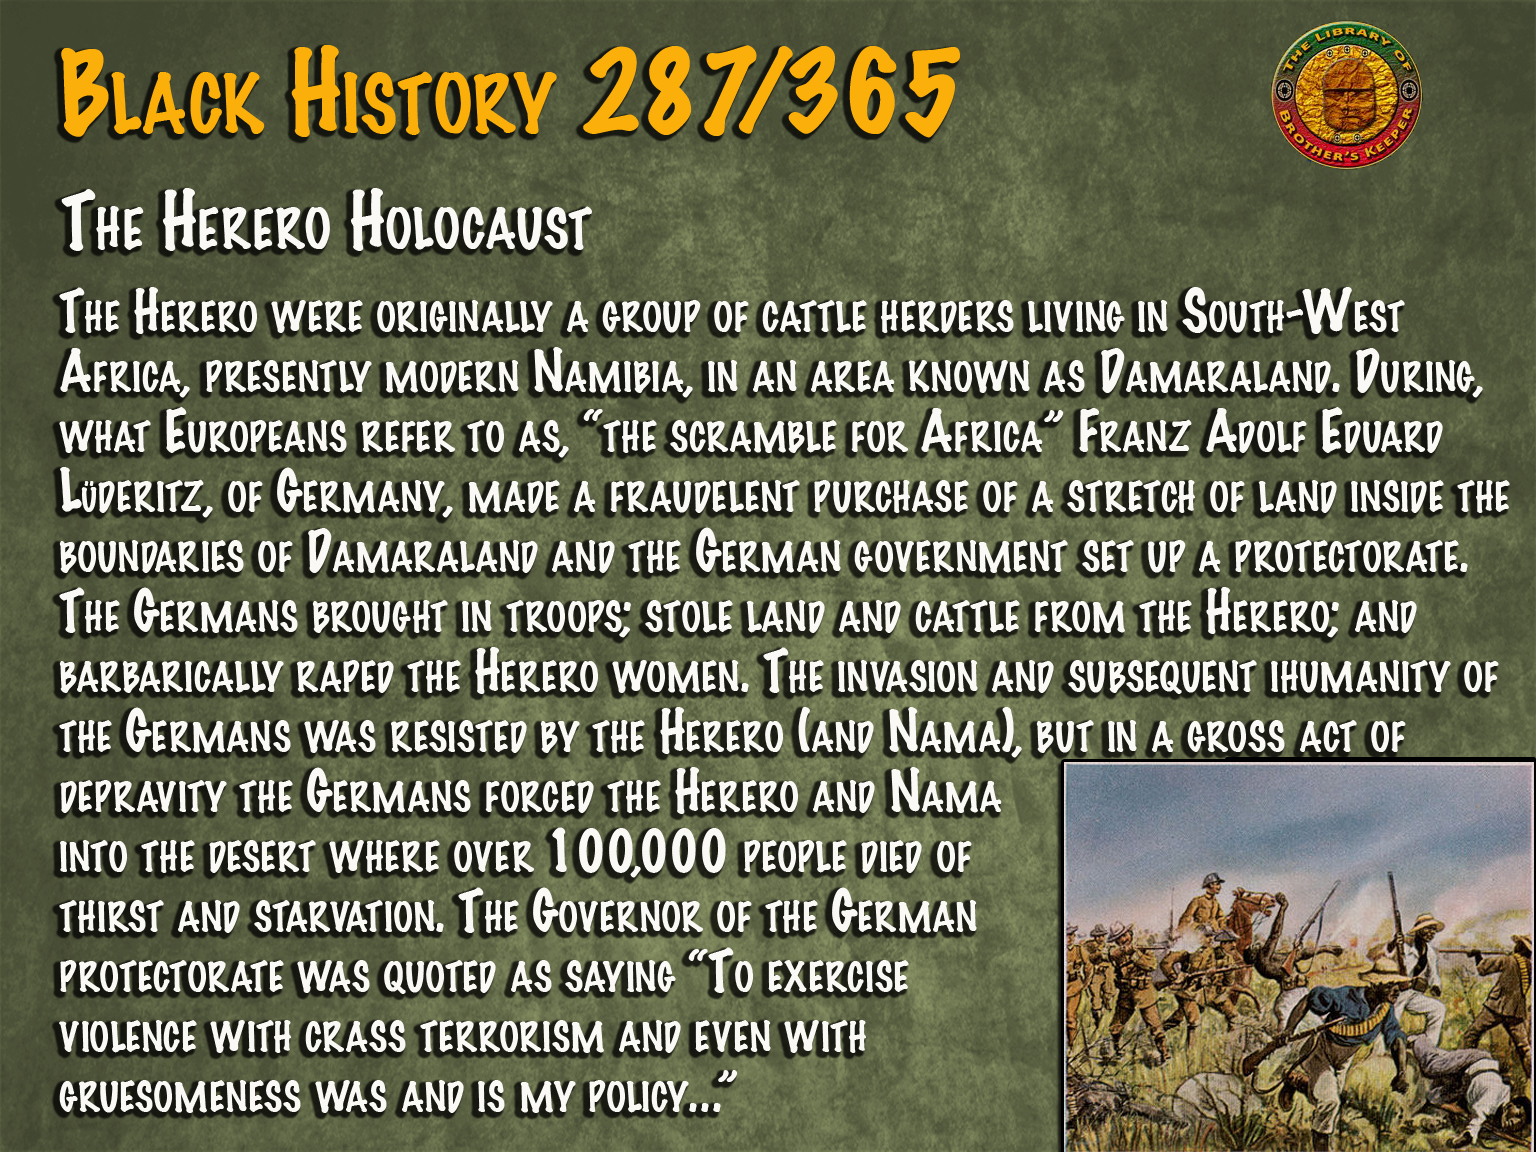 The Herero Holocaust